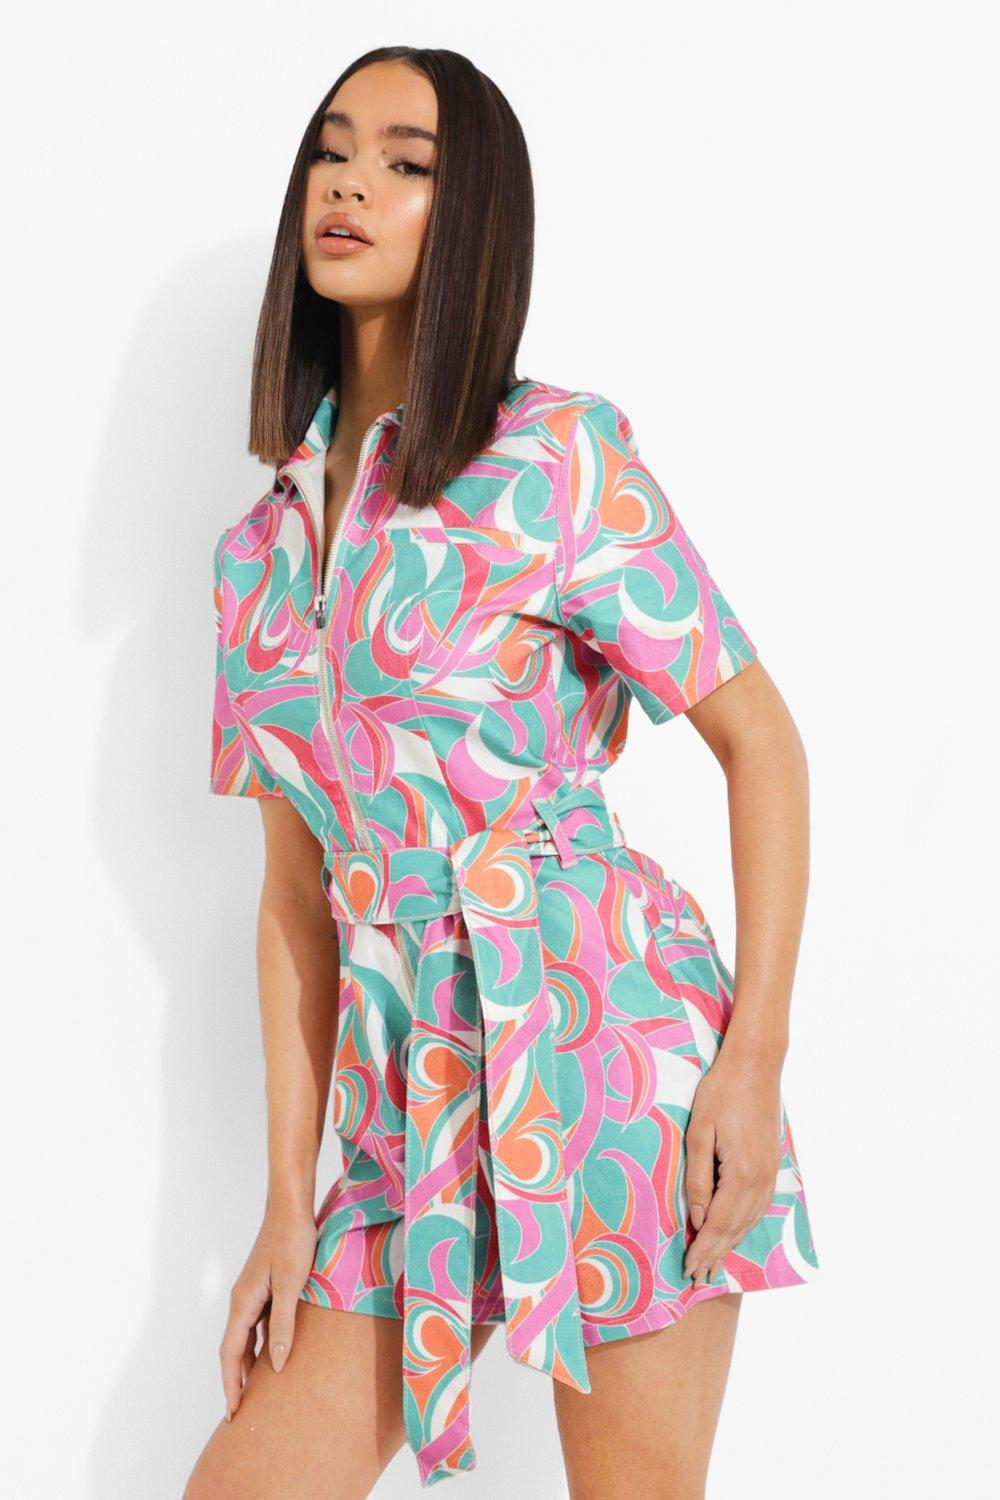 1960s Style Clothing & 60s Fashion Womens Abstract Print Denim Romper - Multi - 12 $36.00 AT vintagedancer.com